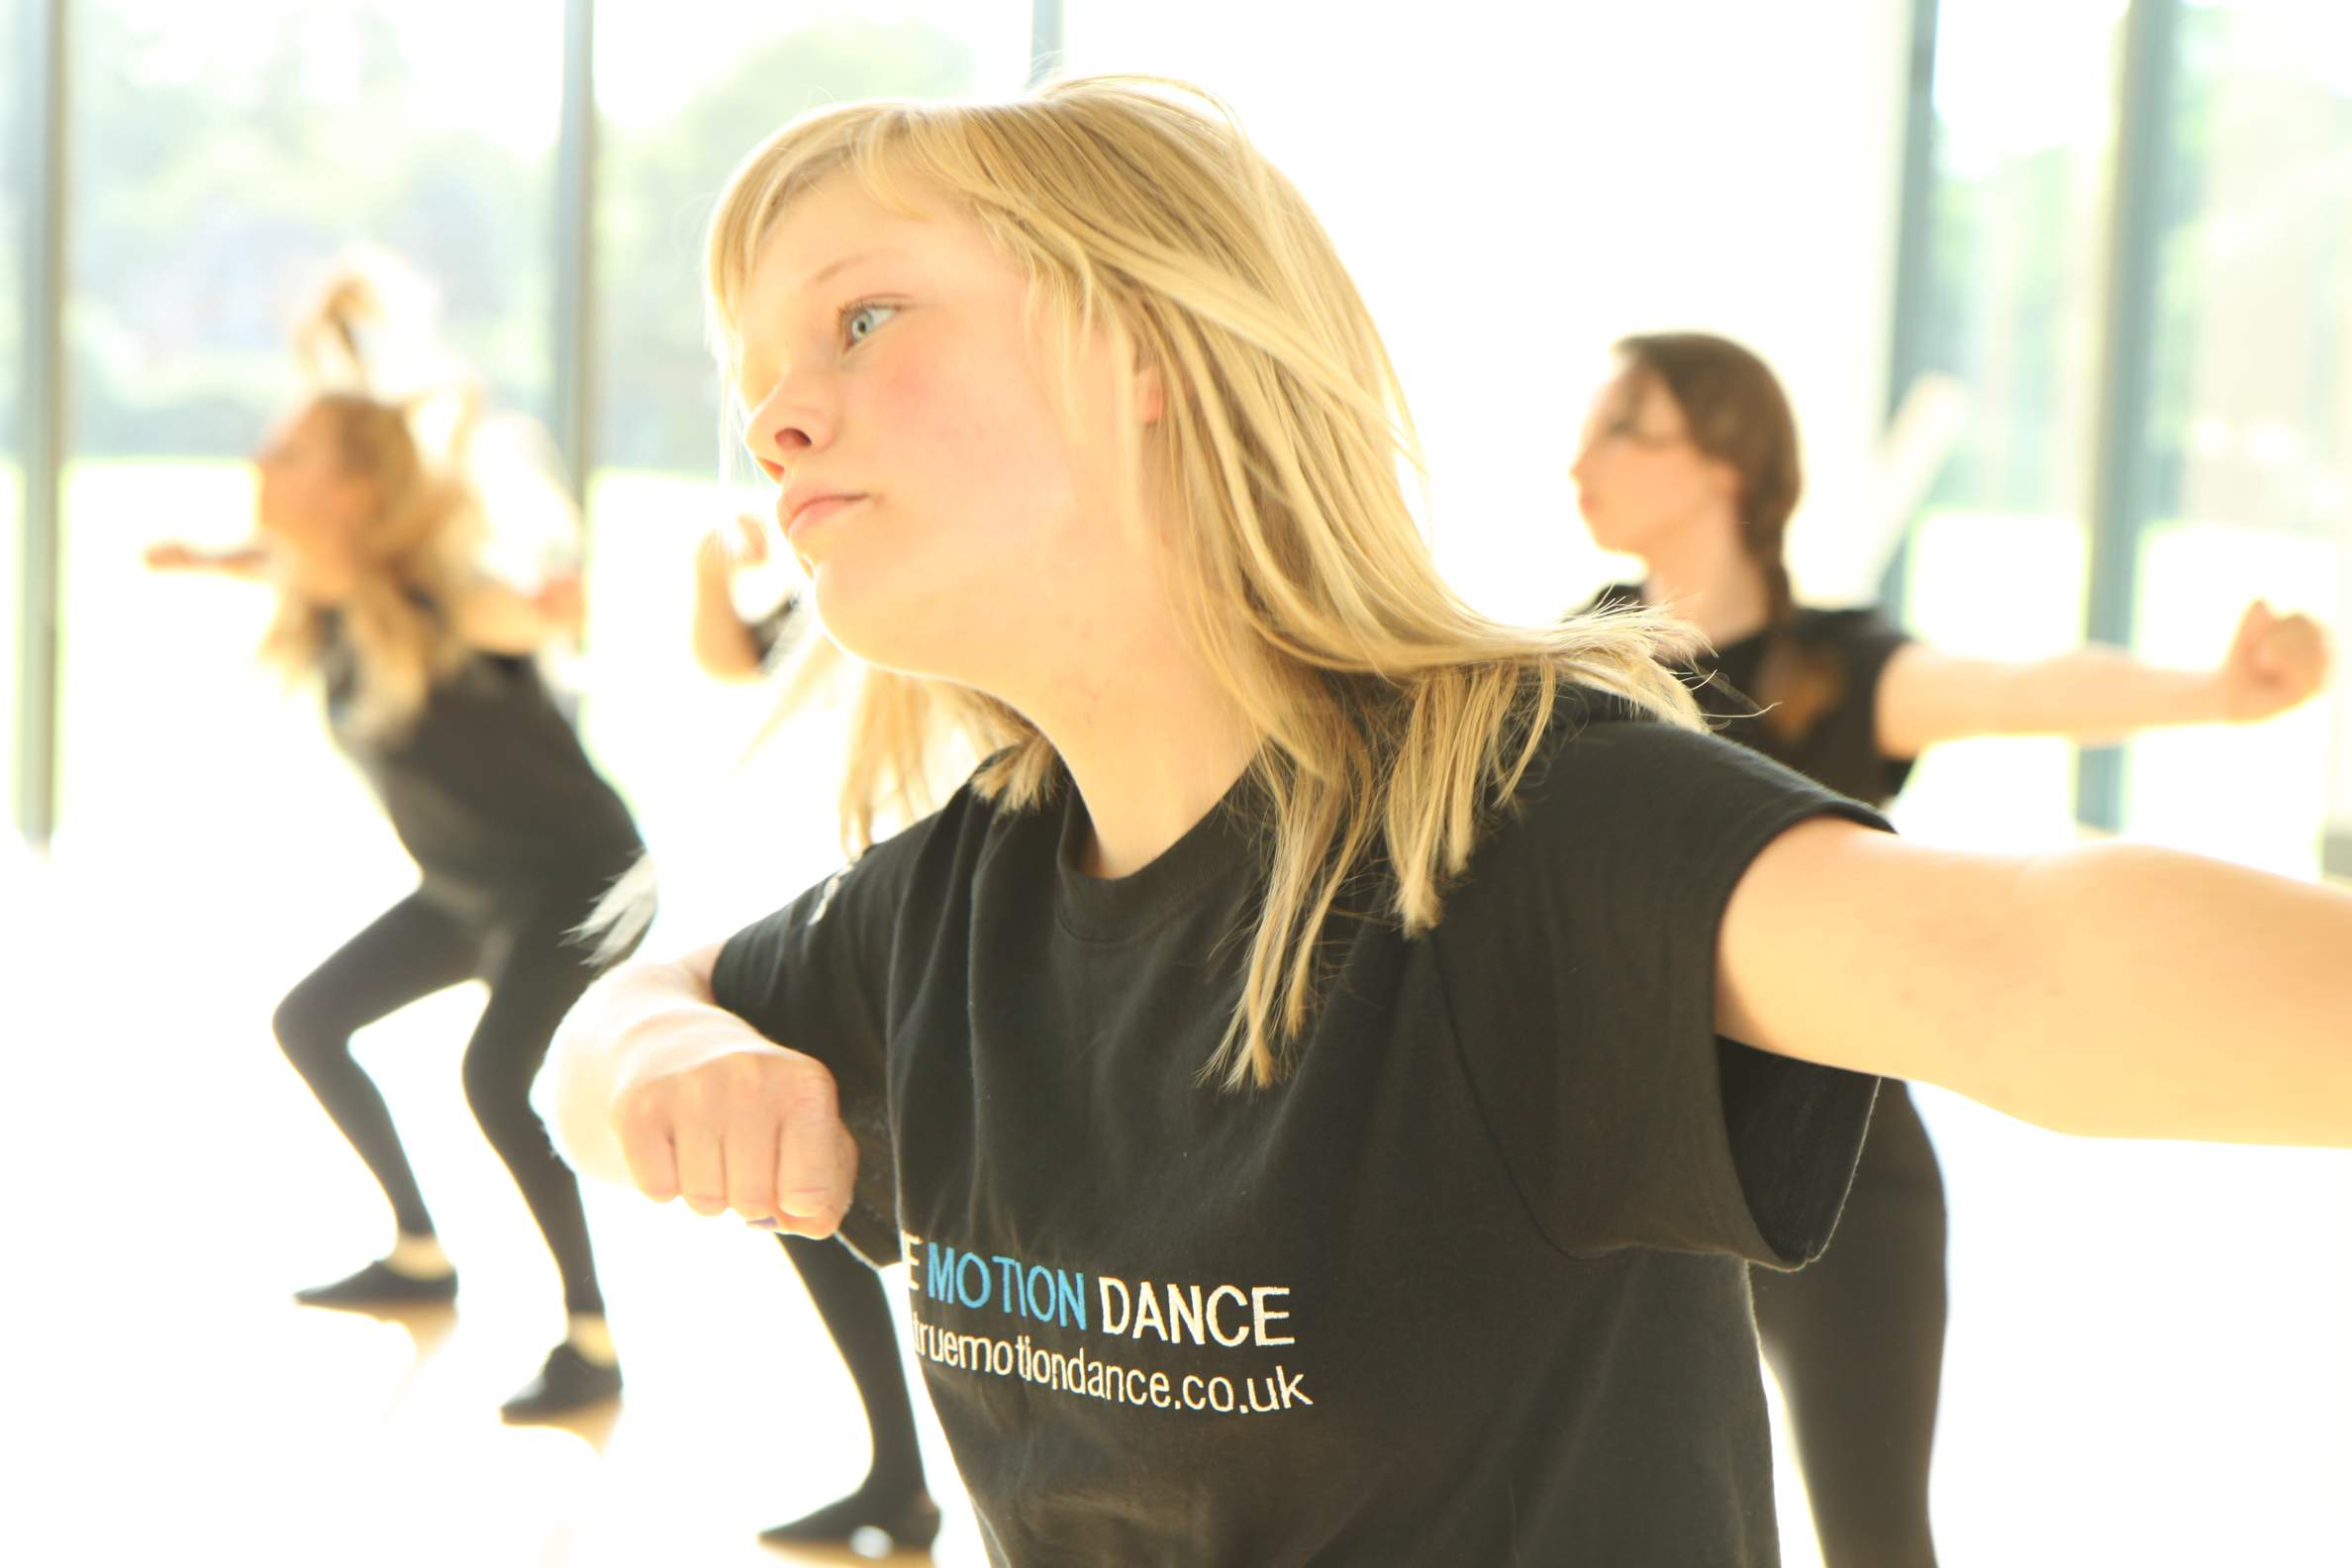 Holiday dance activities in North Norfolk with True Motion Dance